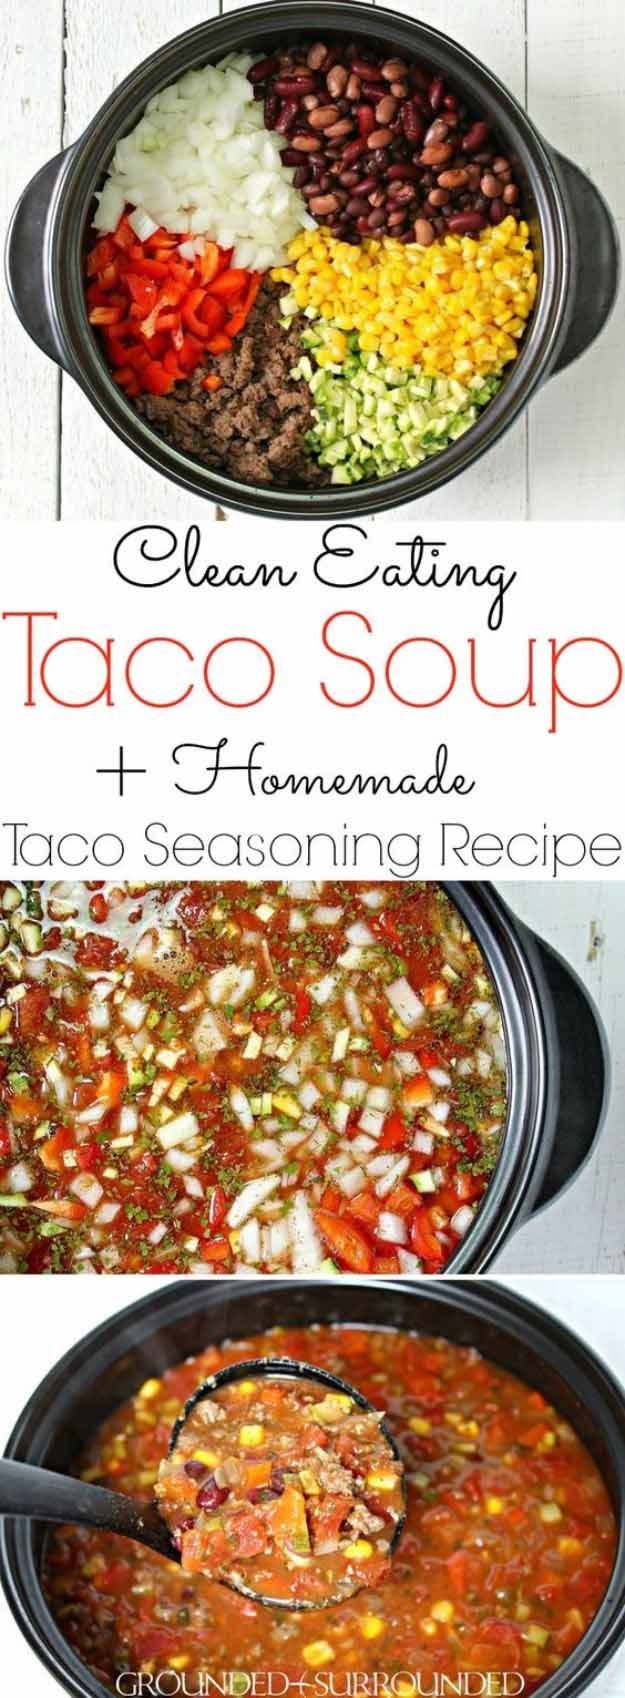 Quick and Easy Healthy Dinner Recipes - Taco Soup + Homemade Taco Seasoning Recipe- Awesome Recipes For Weight Loss - Great Receipes For One, For Two or For Family Gatherings - Quick Recipes for When You're On A Budget - Chicken and Zucchini Dishes Under 500 Calories - Quick Low Carb Dinners With Beef or Shrimp or Even Vegetarian - Amazing Dishes For Picky Eaters - https://thegoddess.com/easy-healthy-dinner-receipes